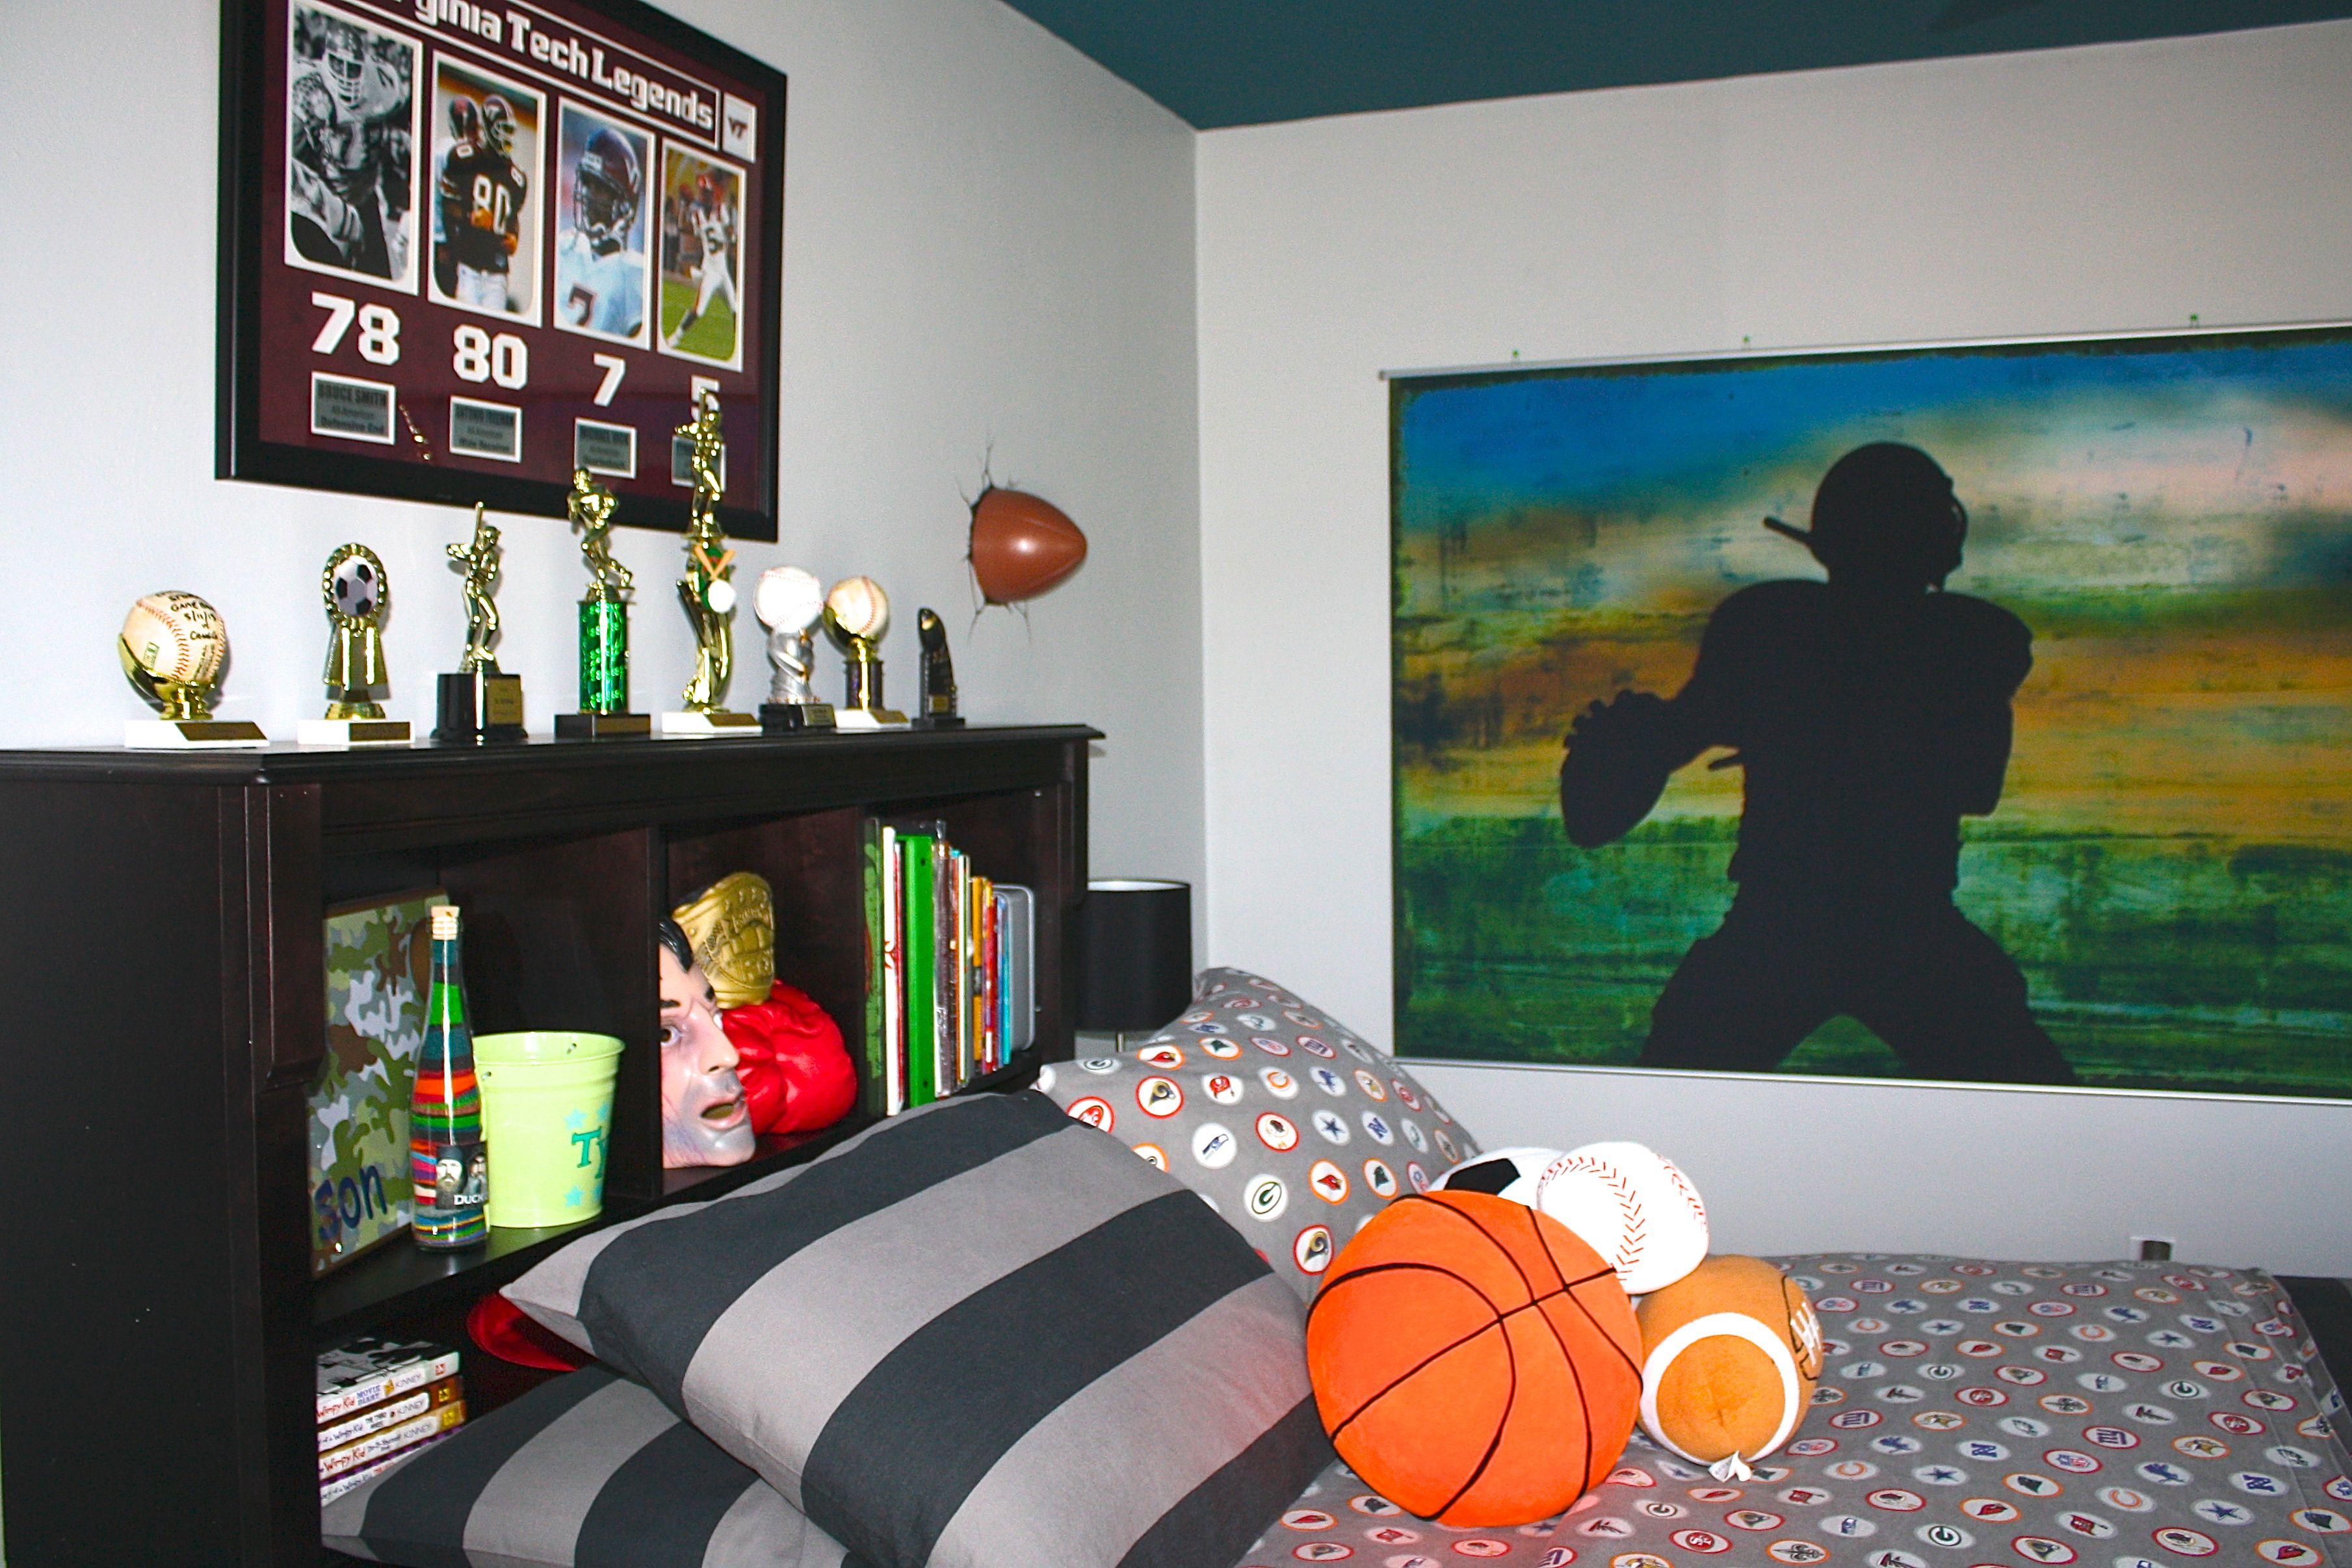 NFL/College Football Bedroom. Pottery Barn NFL Sheets And Varsity Football  Wall Mural.